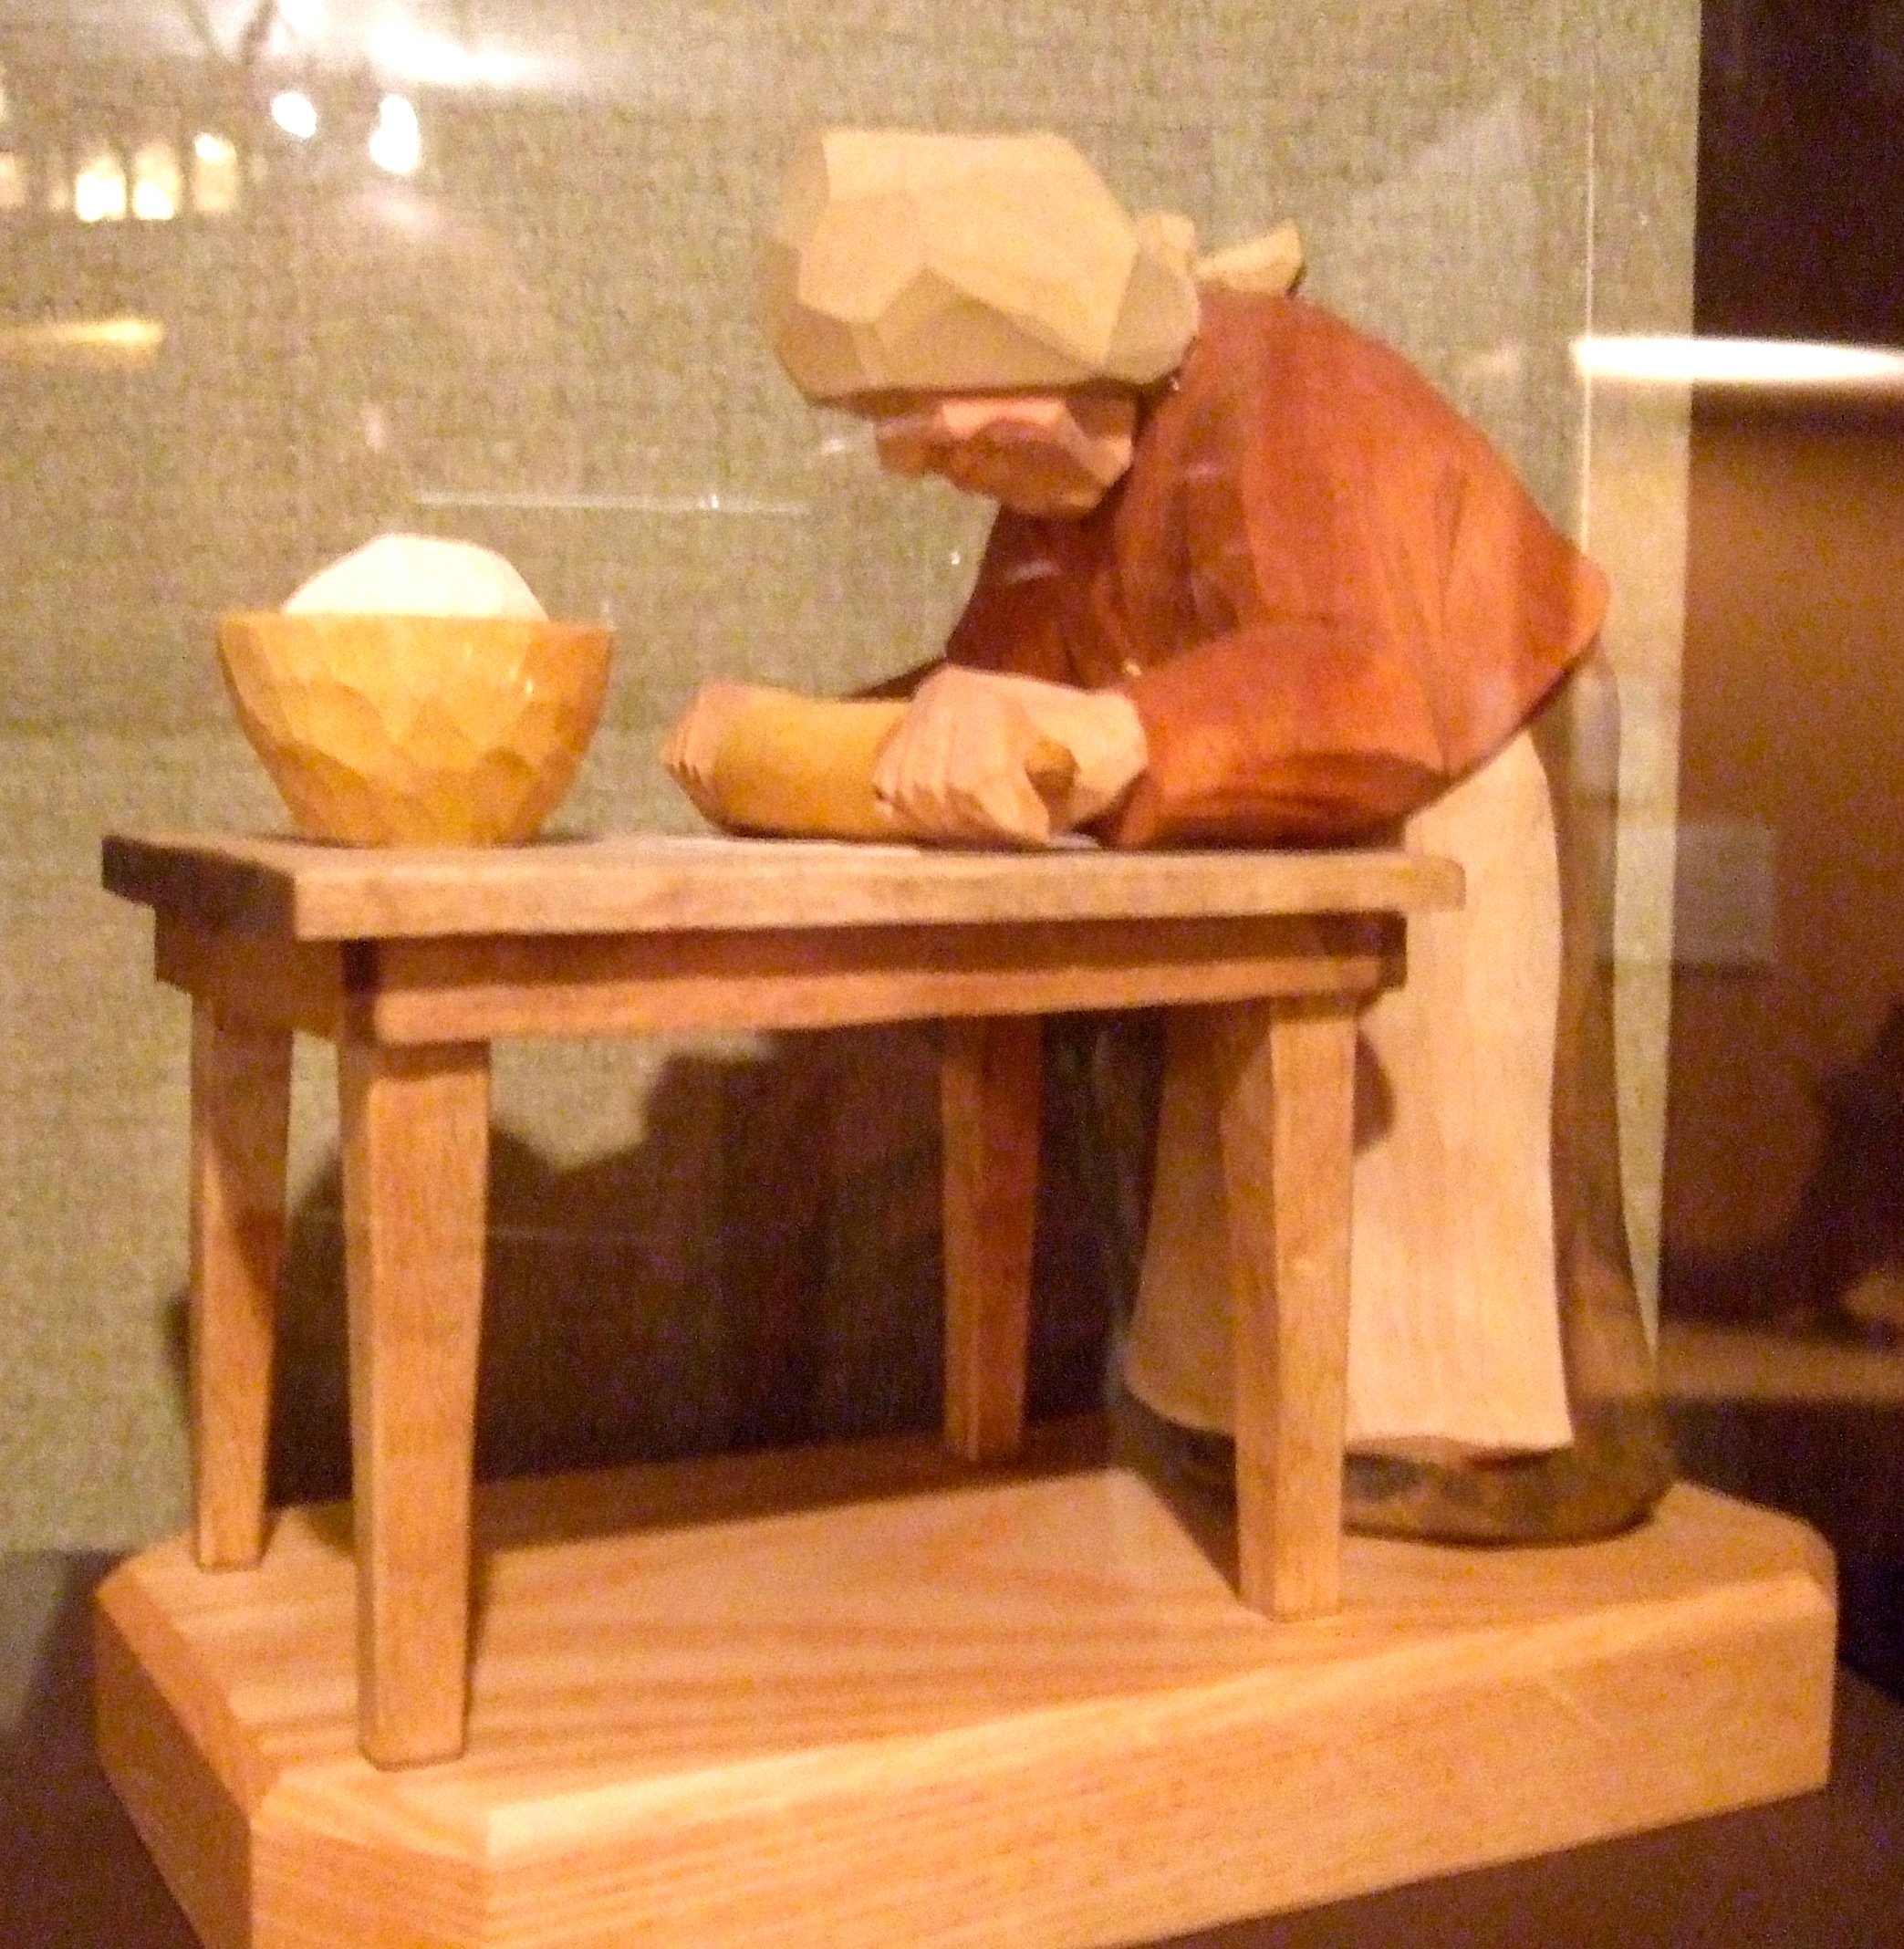 Best Wood Chip Carving : Chip carving